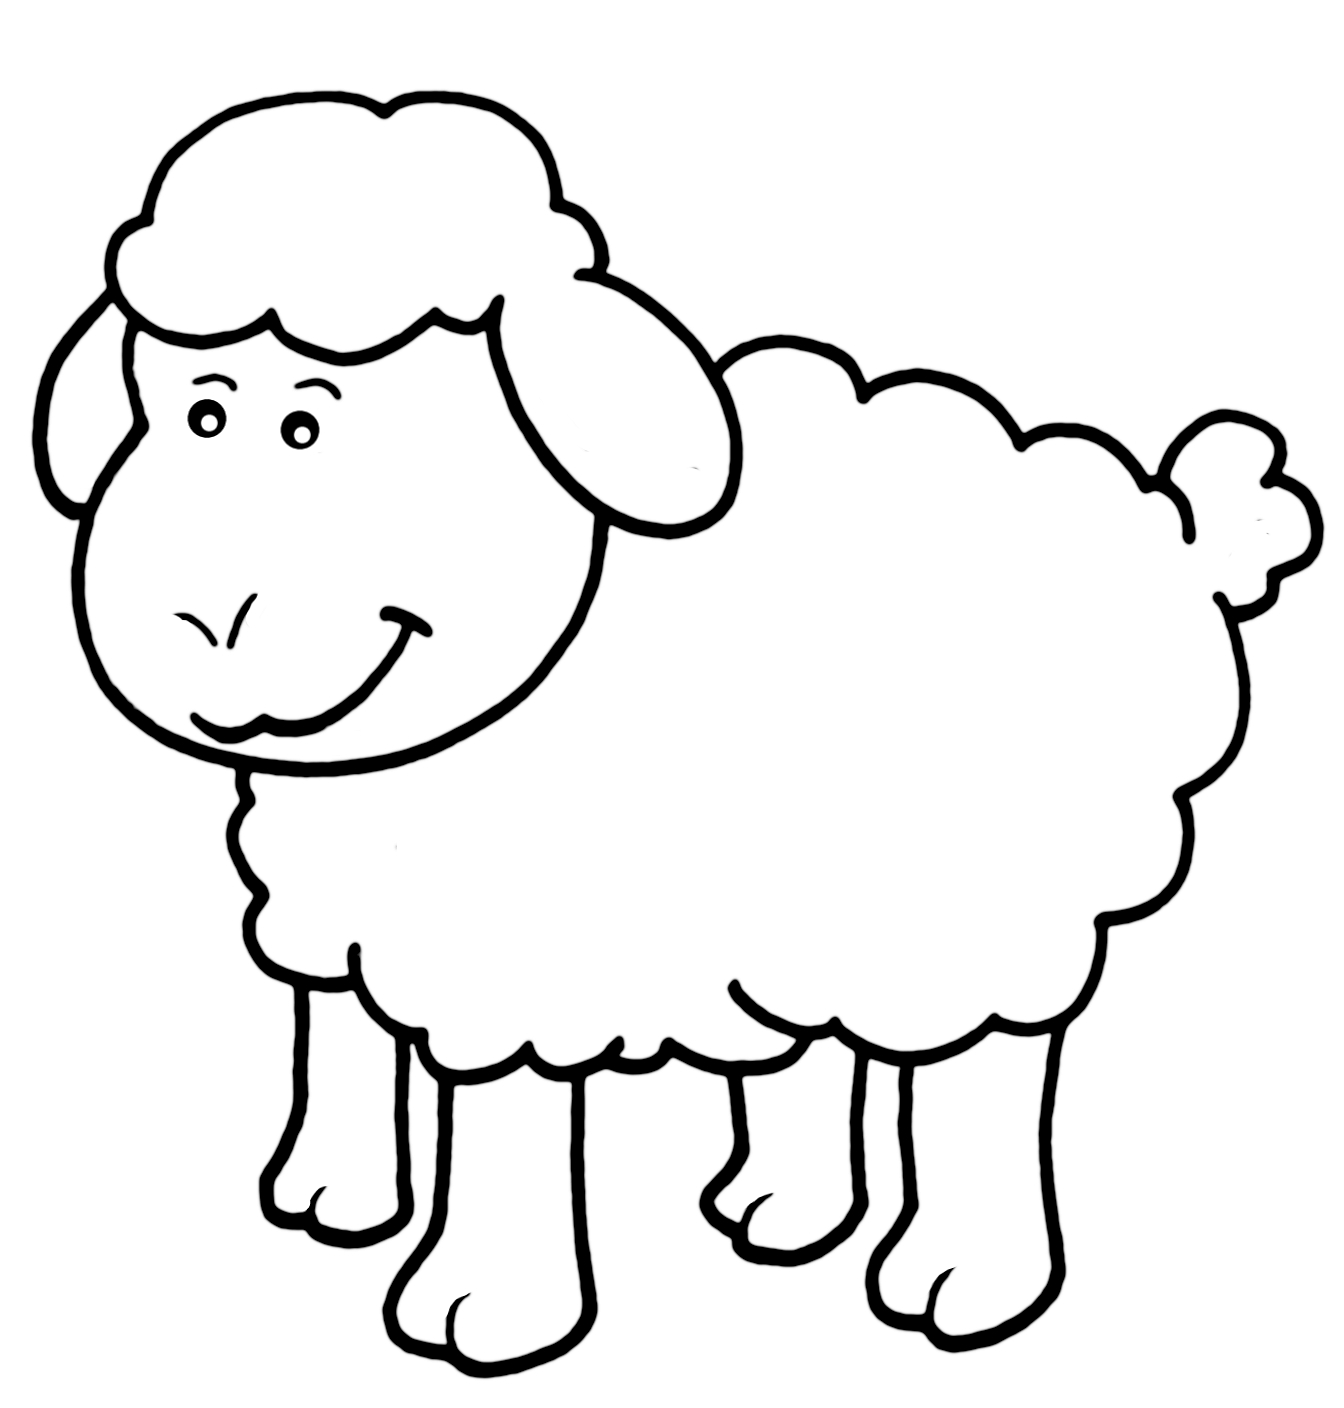 sheep pictures to color cute sheep coloring page free printable coloring pages sheep pictures to color